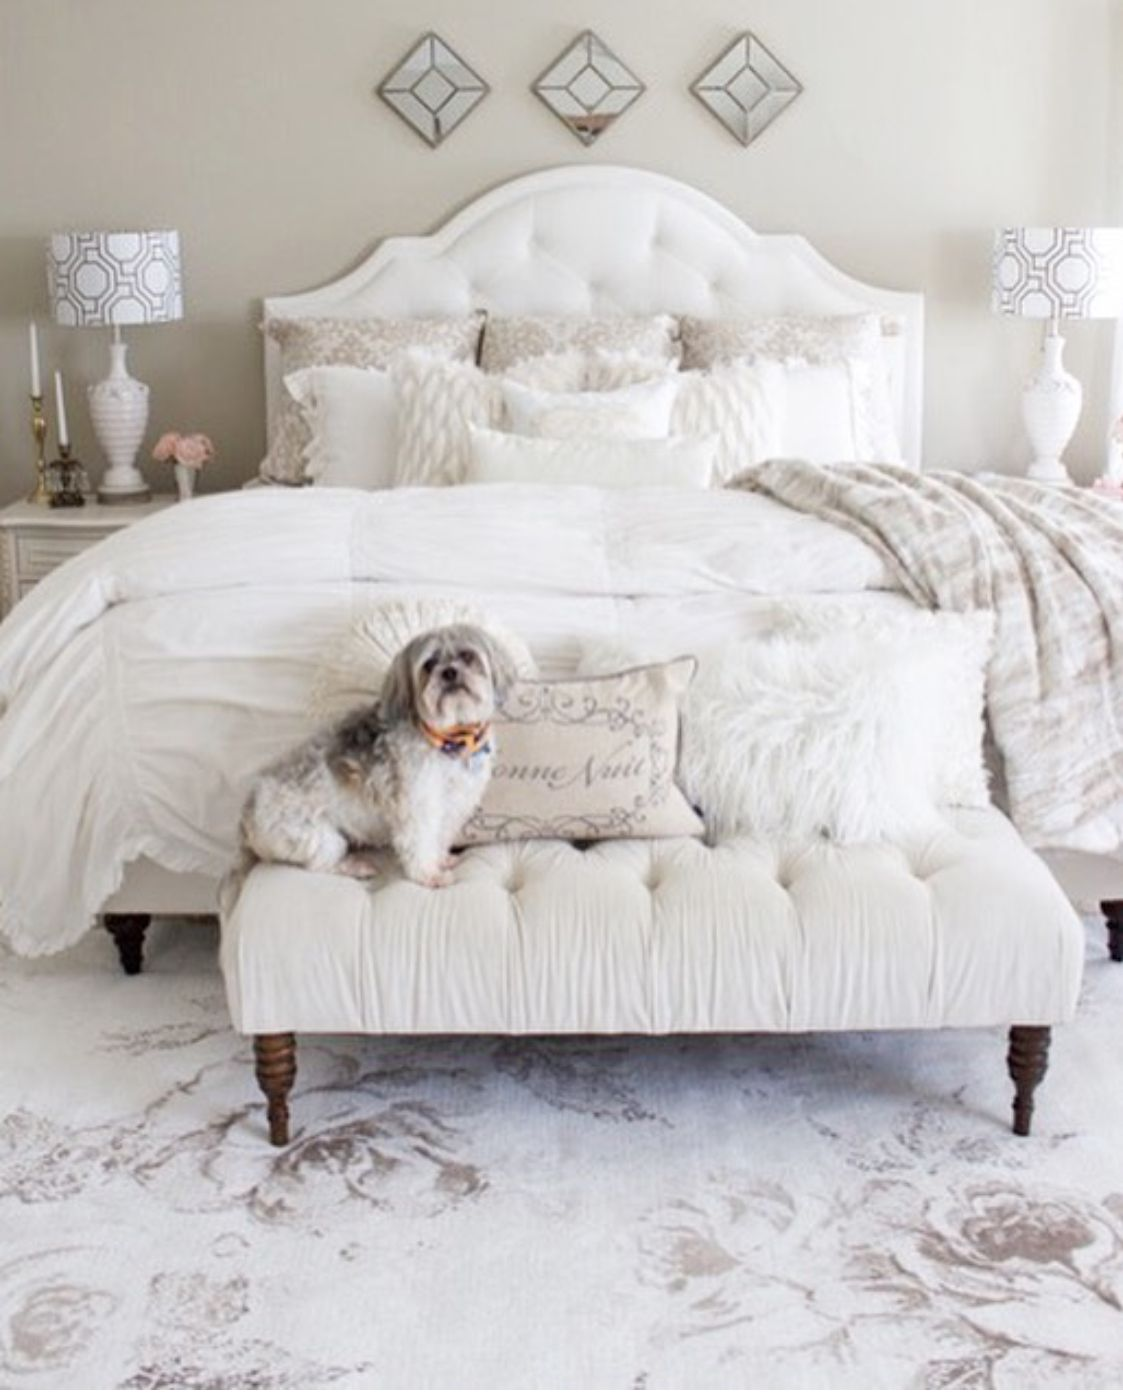 pin by peggie baker on bed in 2019 bedroom decor shabby chic rh pinterest com